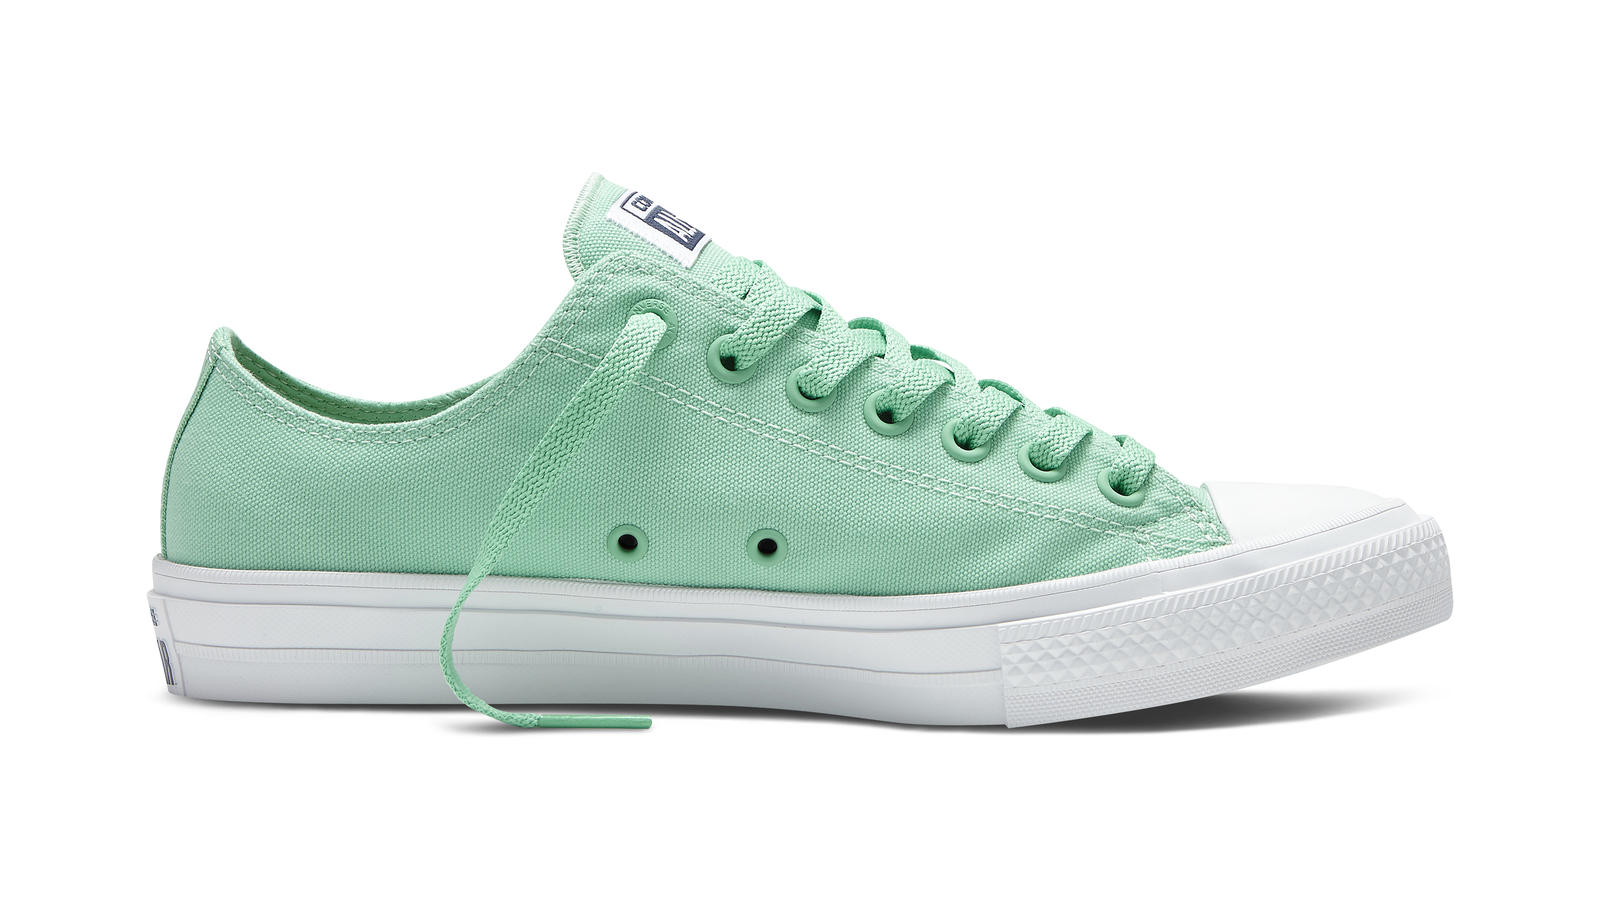 896465baee50 Converse Chuck Taylor All Star Ii Neon Teal Low Top Original